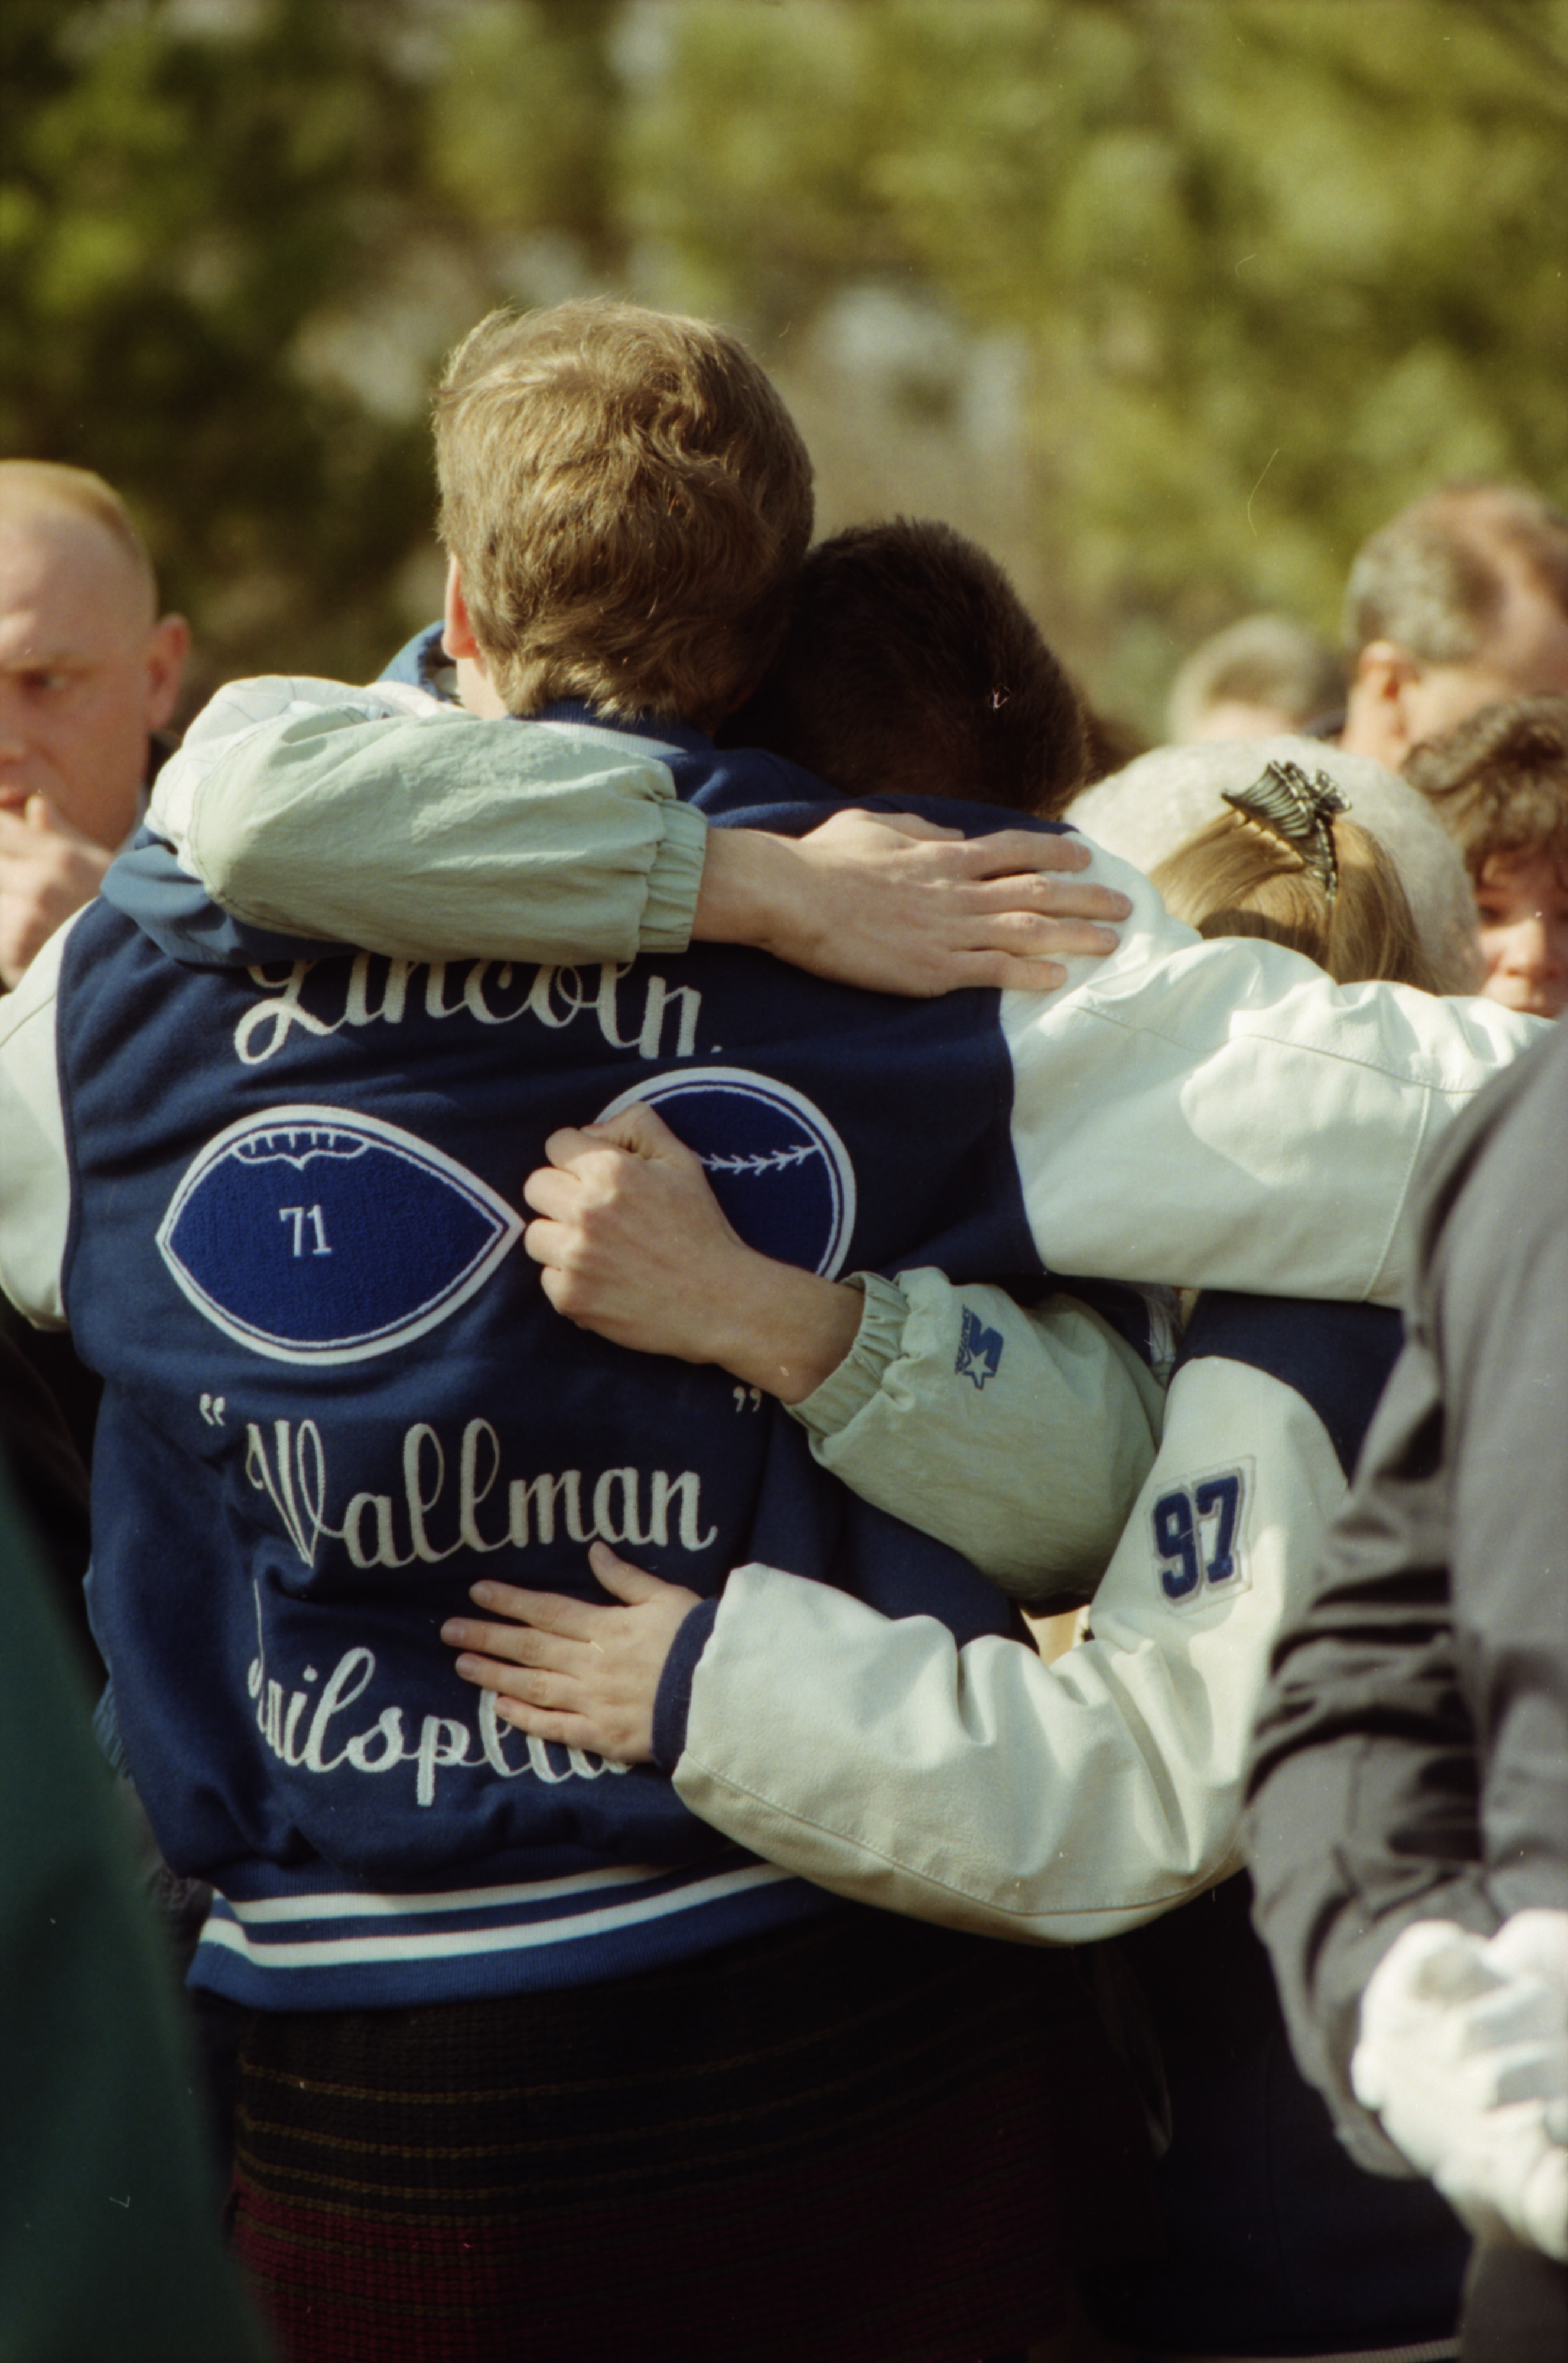 Tammy Sperle's Son Being Comforted by Friends at Oakwood Cemetery in Saline, February 1996 image